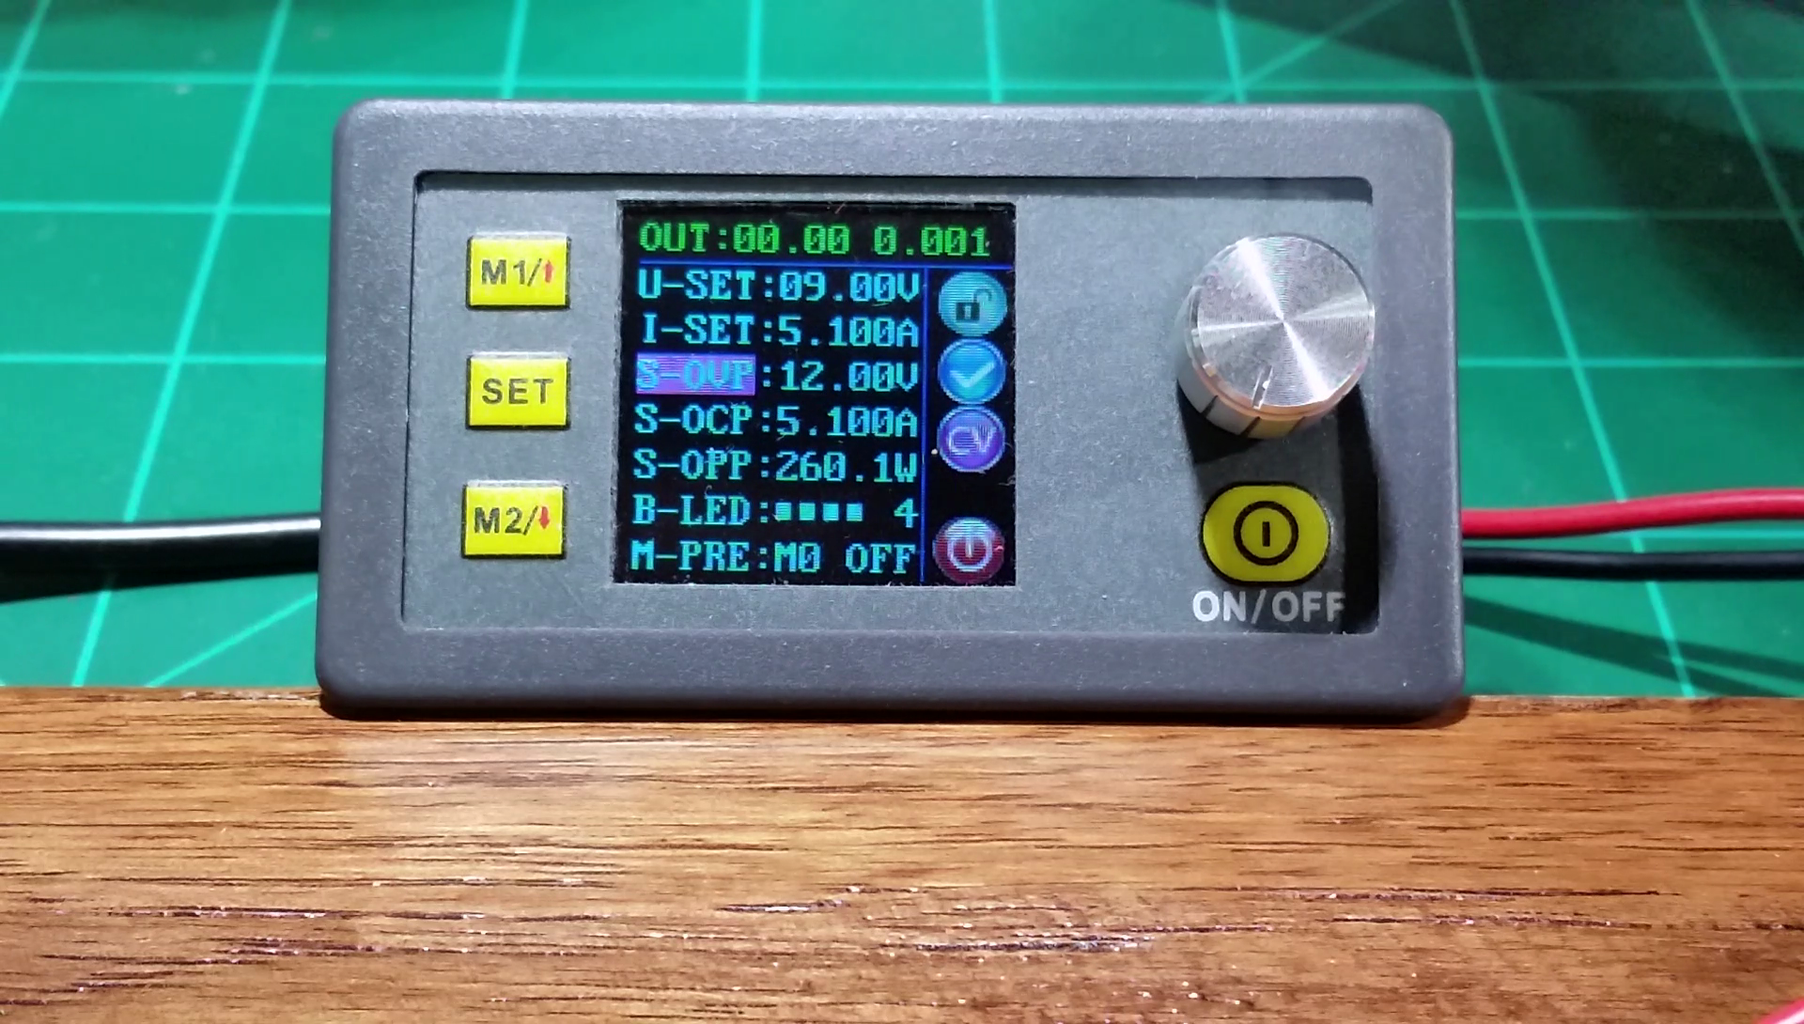 Setting Up OVP - Over Voltage Protection